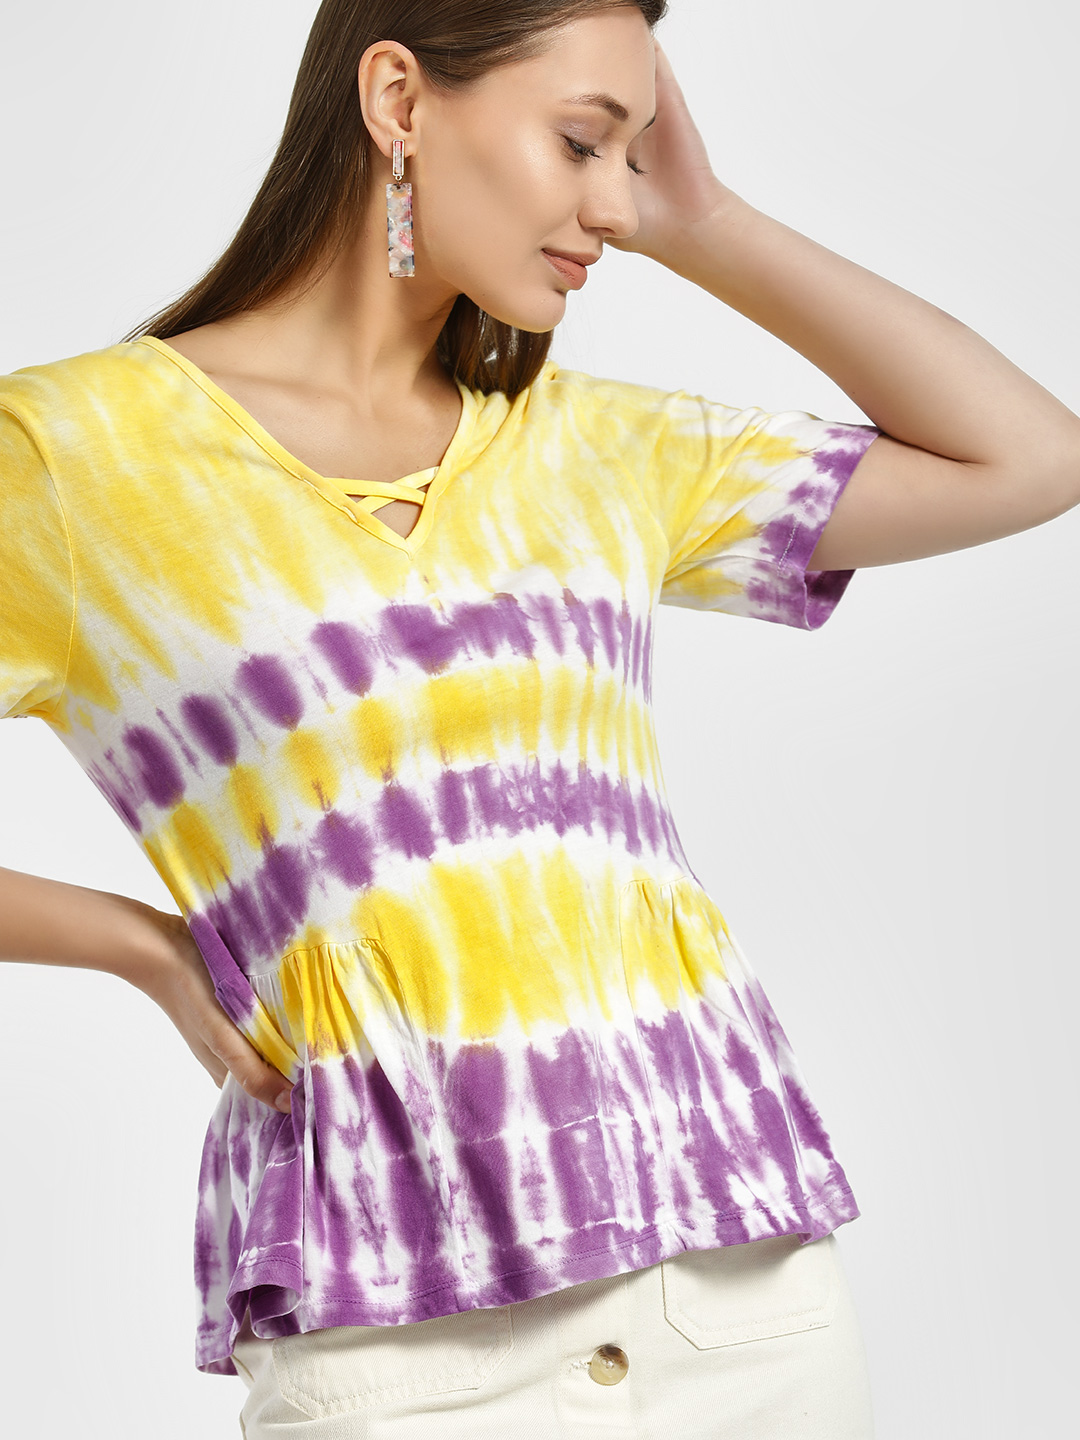 Sbuys Multi Tie & Dye Peplum T-Shirt 1